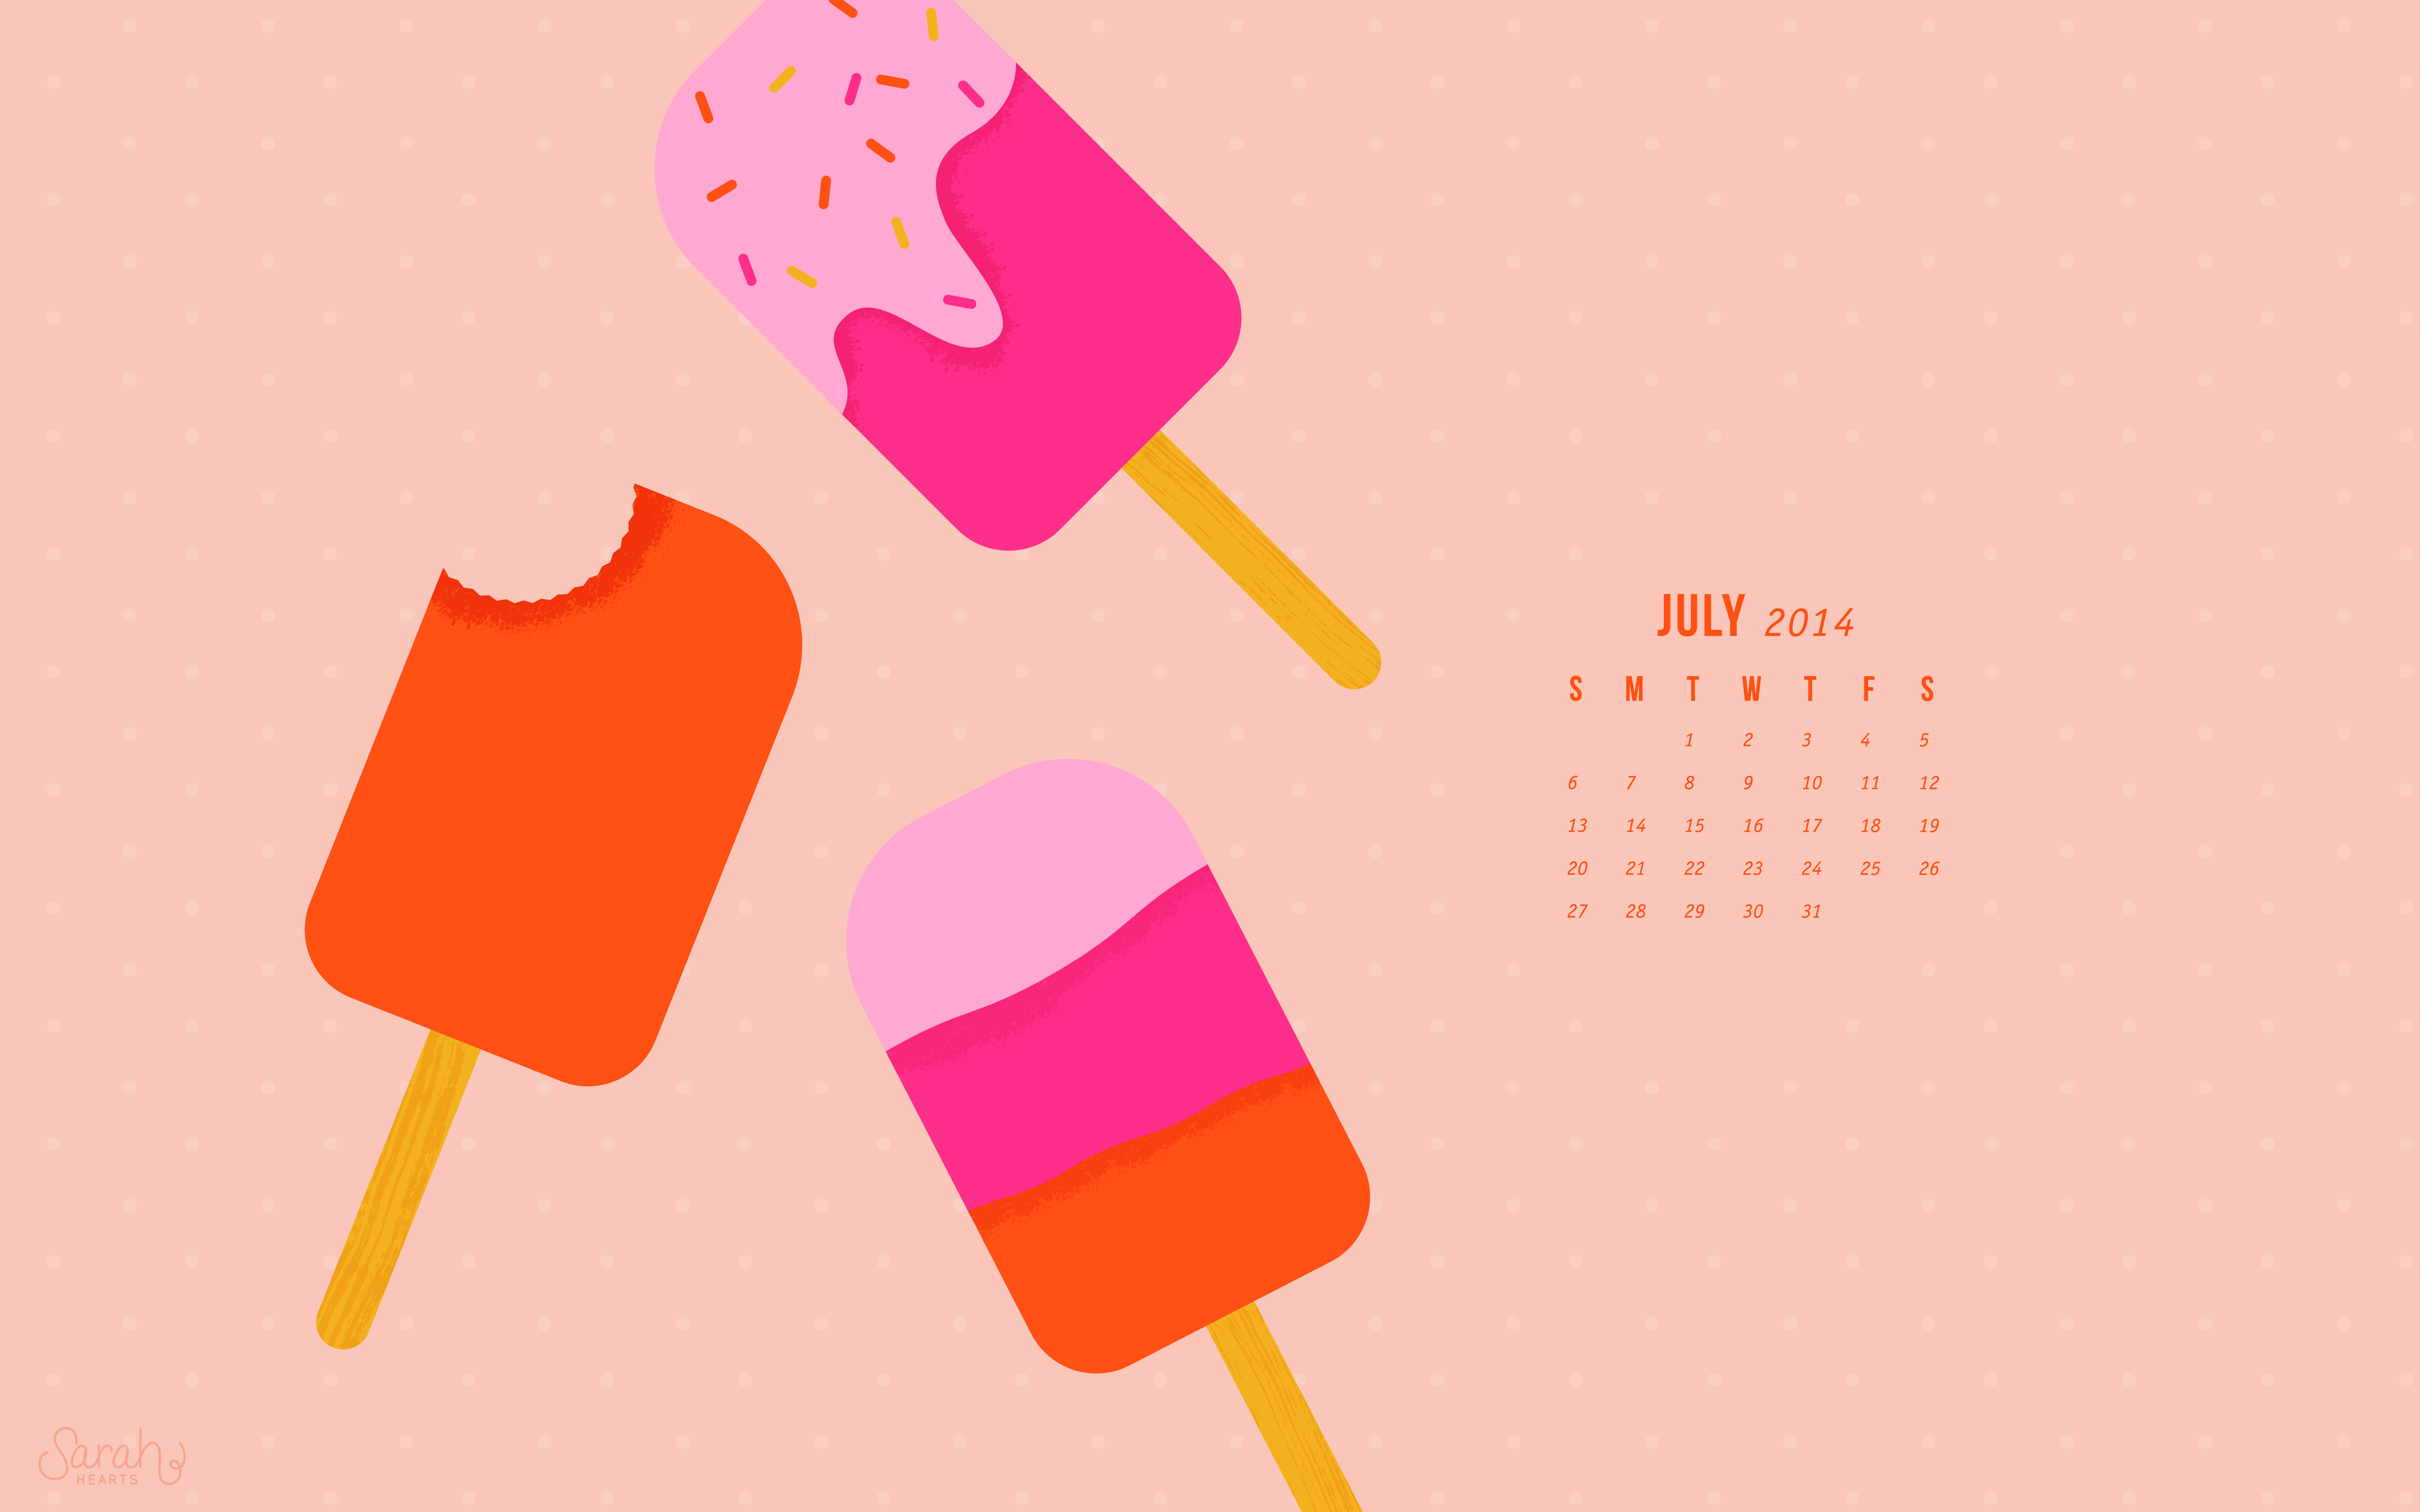 July 2014 Calendar Wallpaper   Sarah Hearts 6000x3750